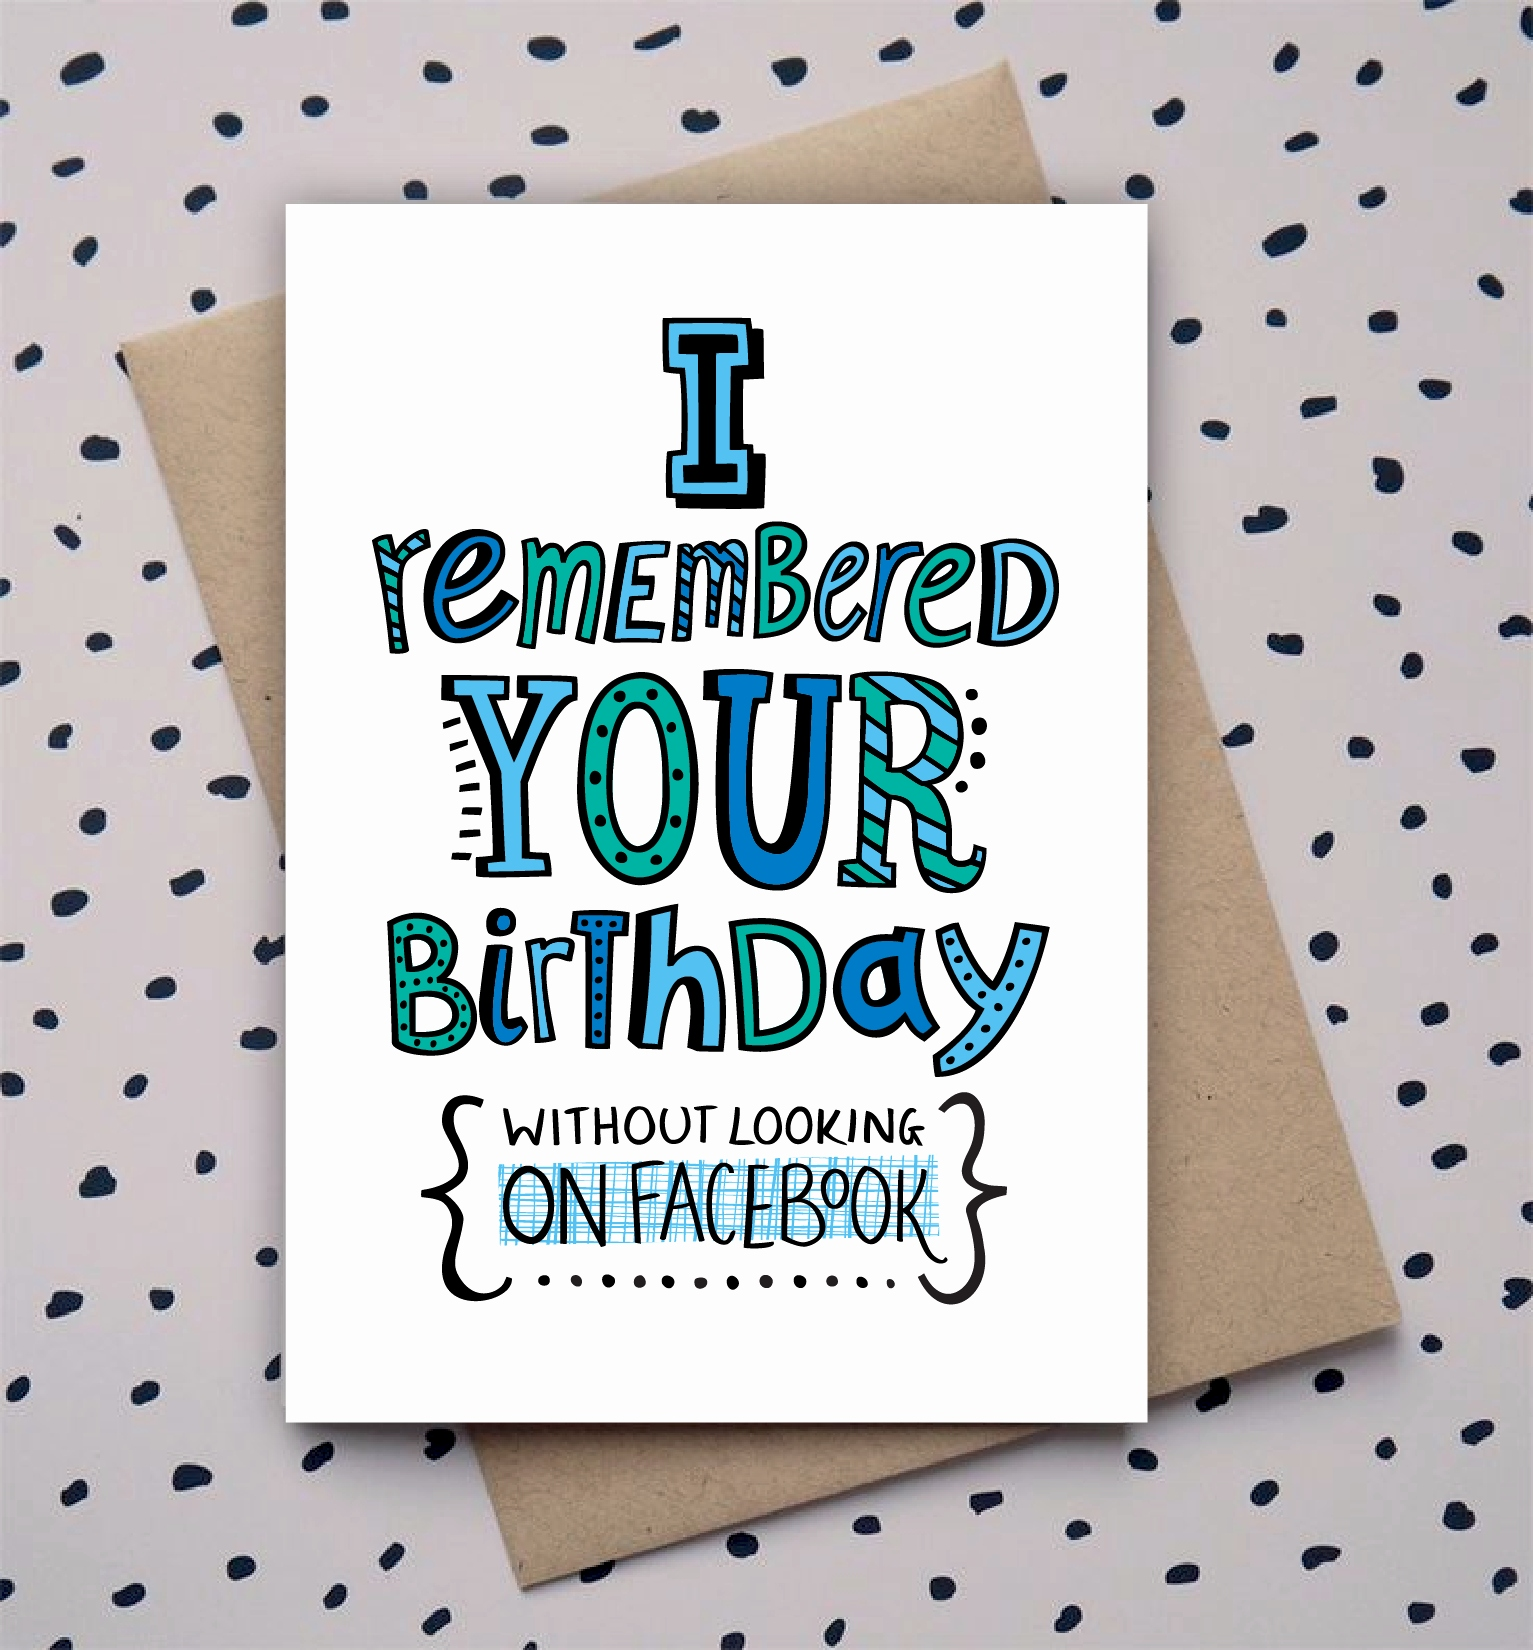 cool birthday card ideas for mom ; funny-mom-birthday-card-ideas-unique-hand-drawn-type-doodle-birthday-card-funny-funny-of-funny-mom-birthday-card-ideas